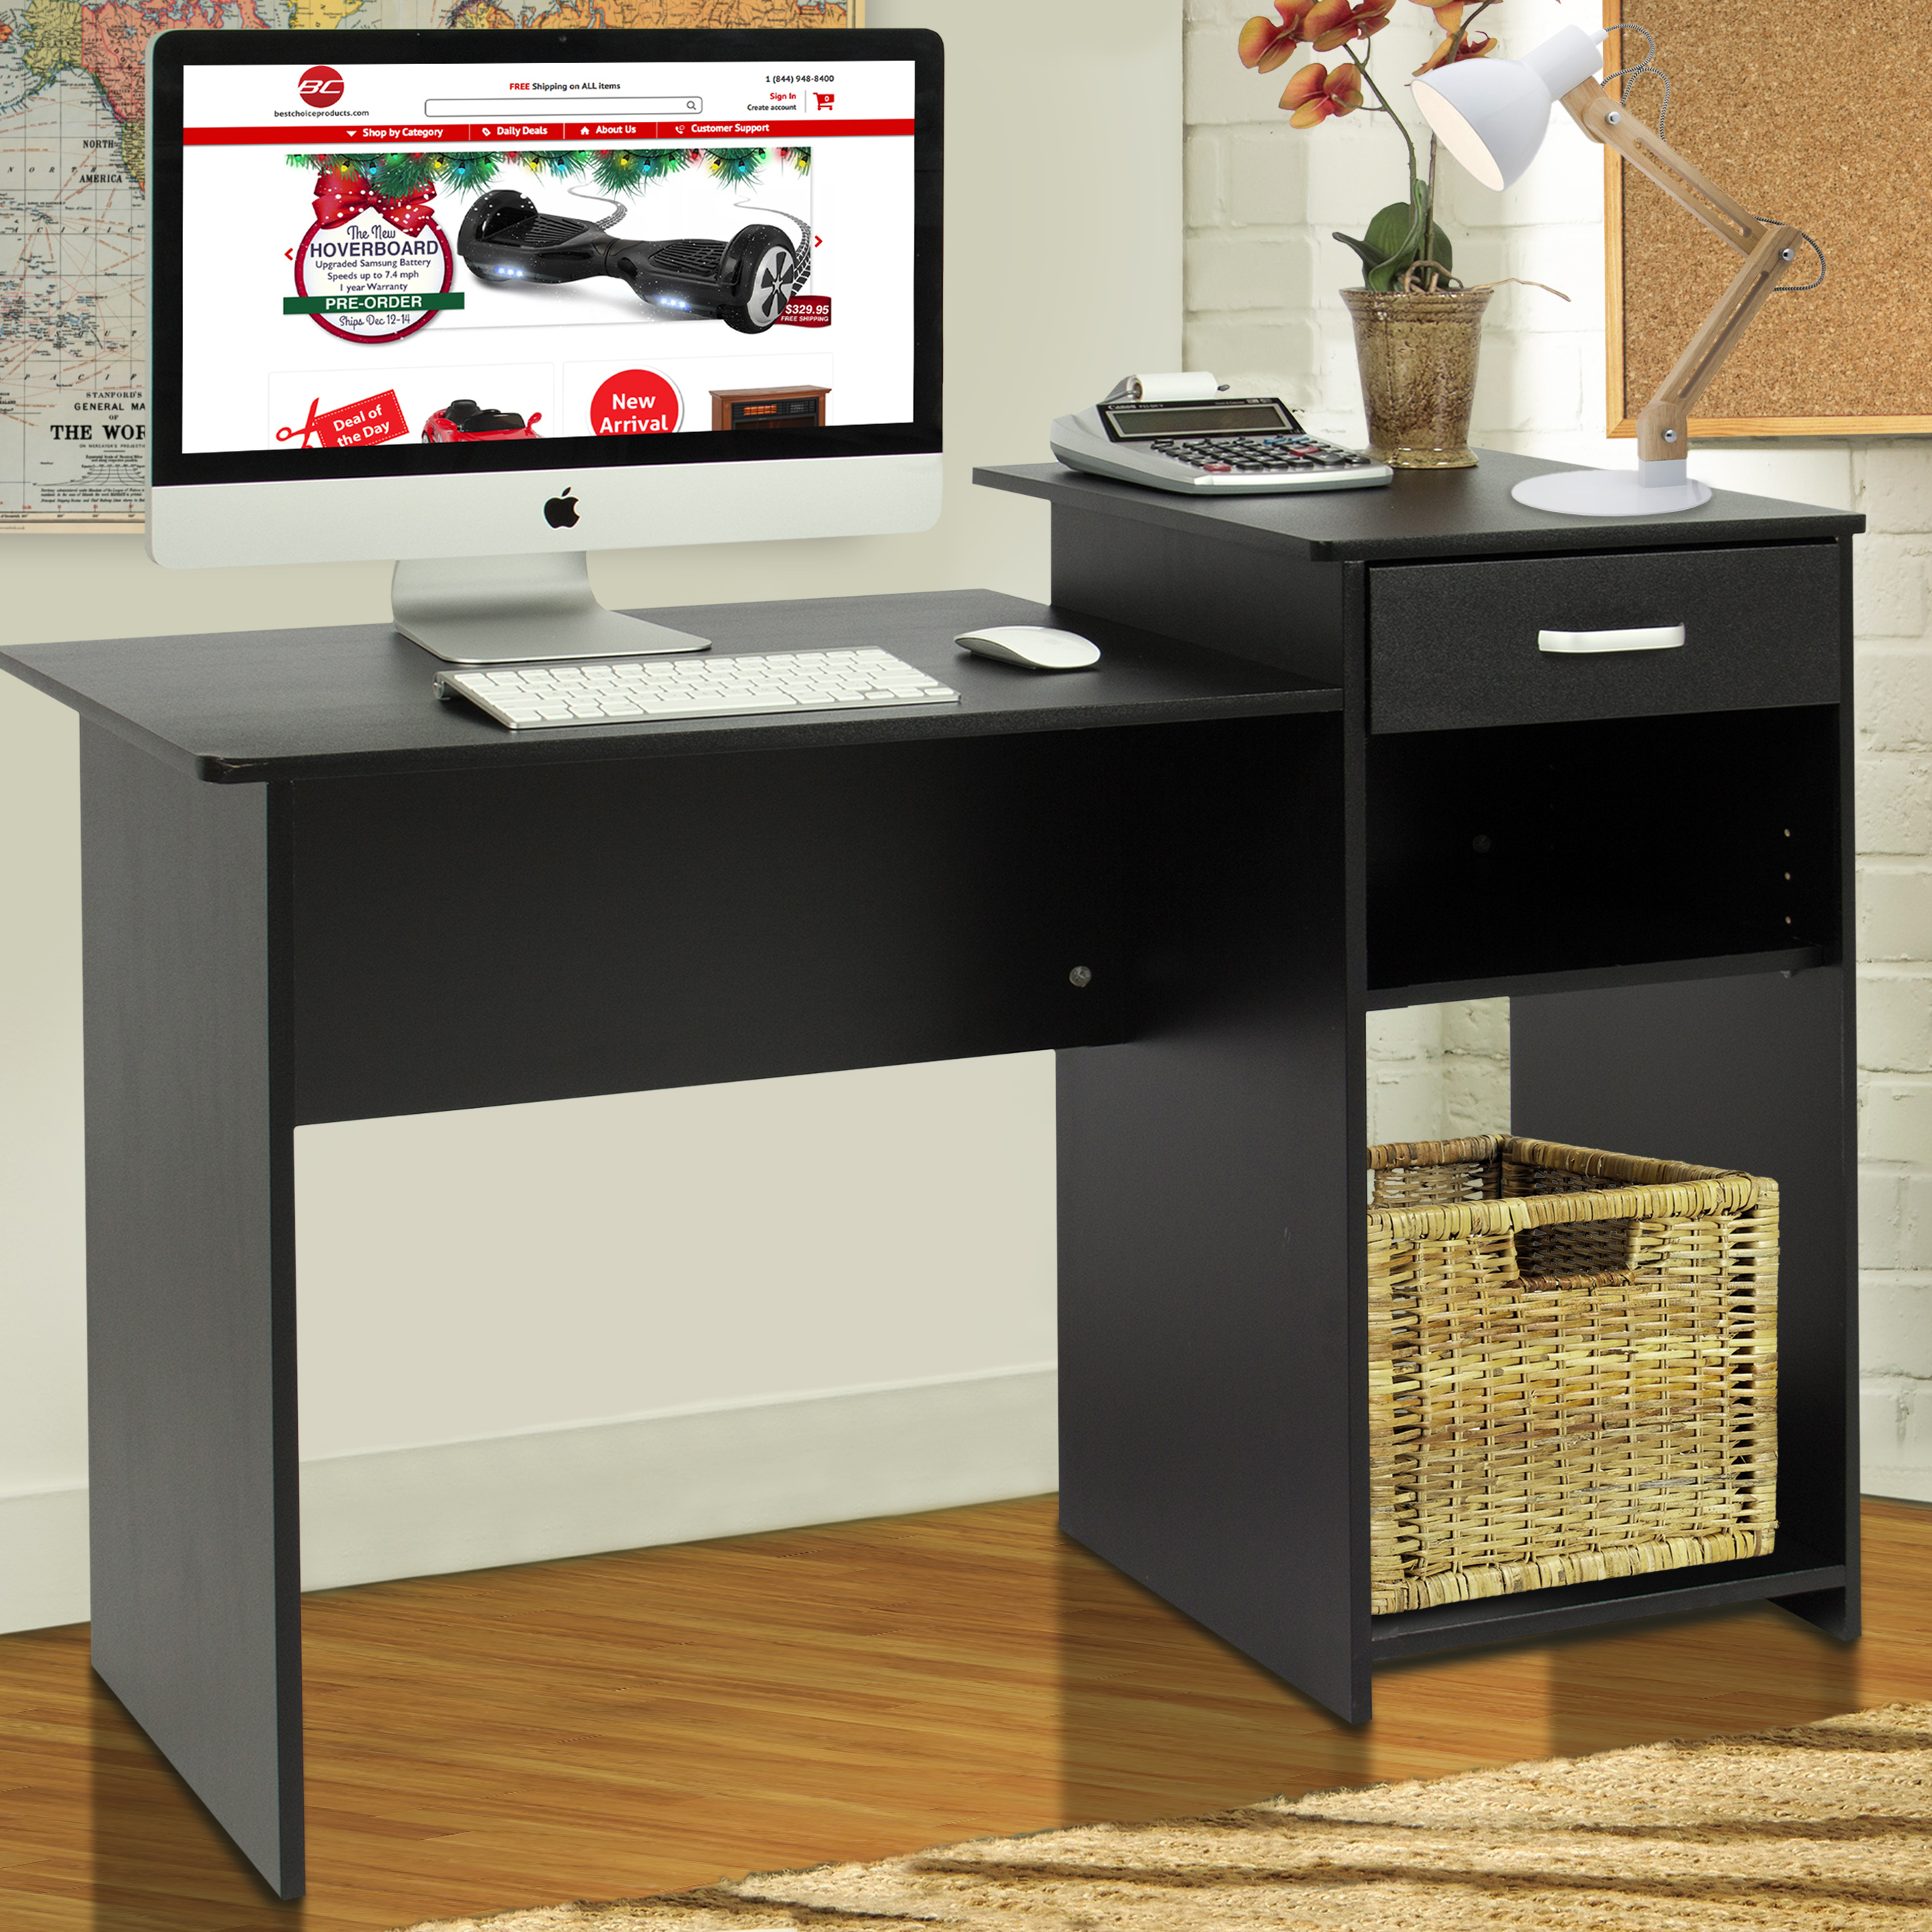 office wood desk. Best Choice Products Student Computer Desk Home Office Wood Laptop Table Study Workstation Dorm - Black Walmart.com U